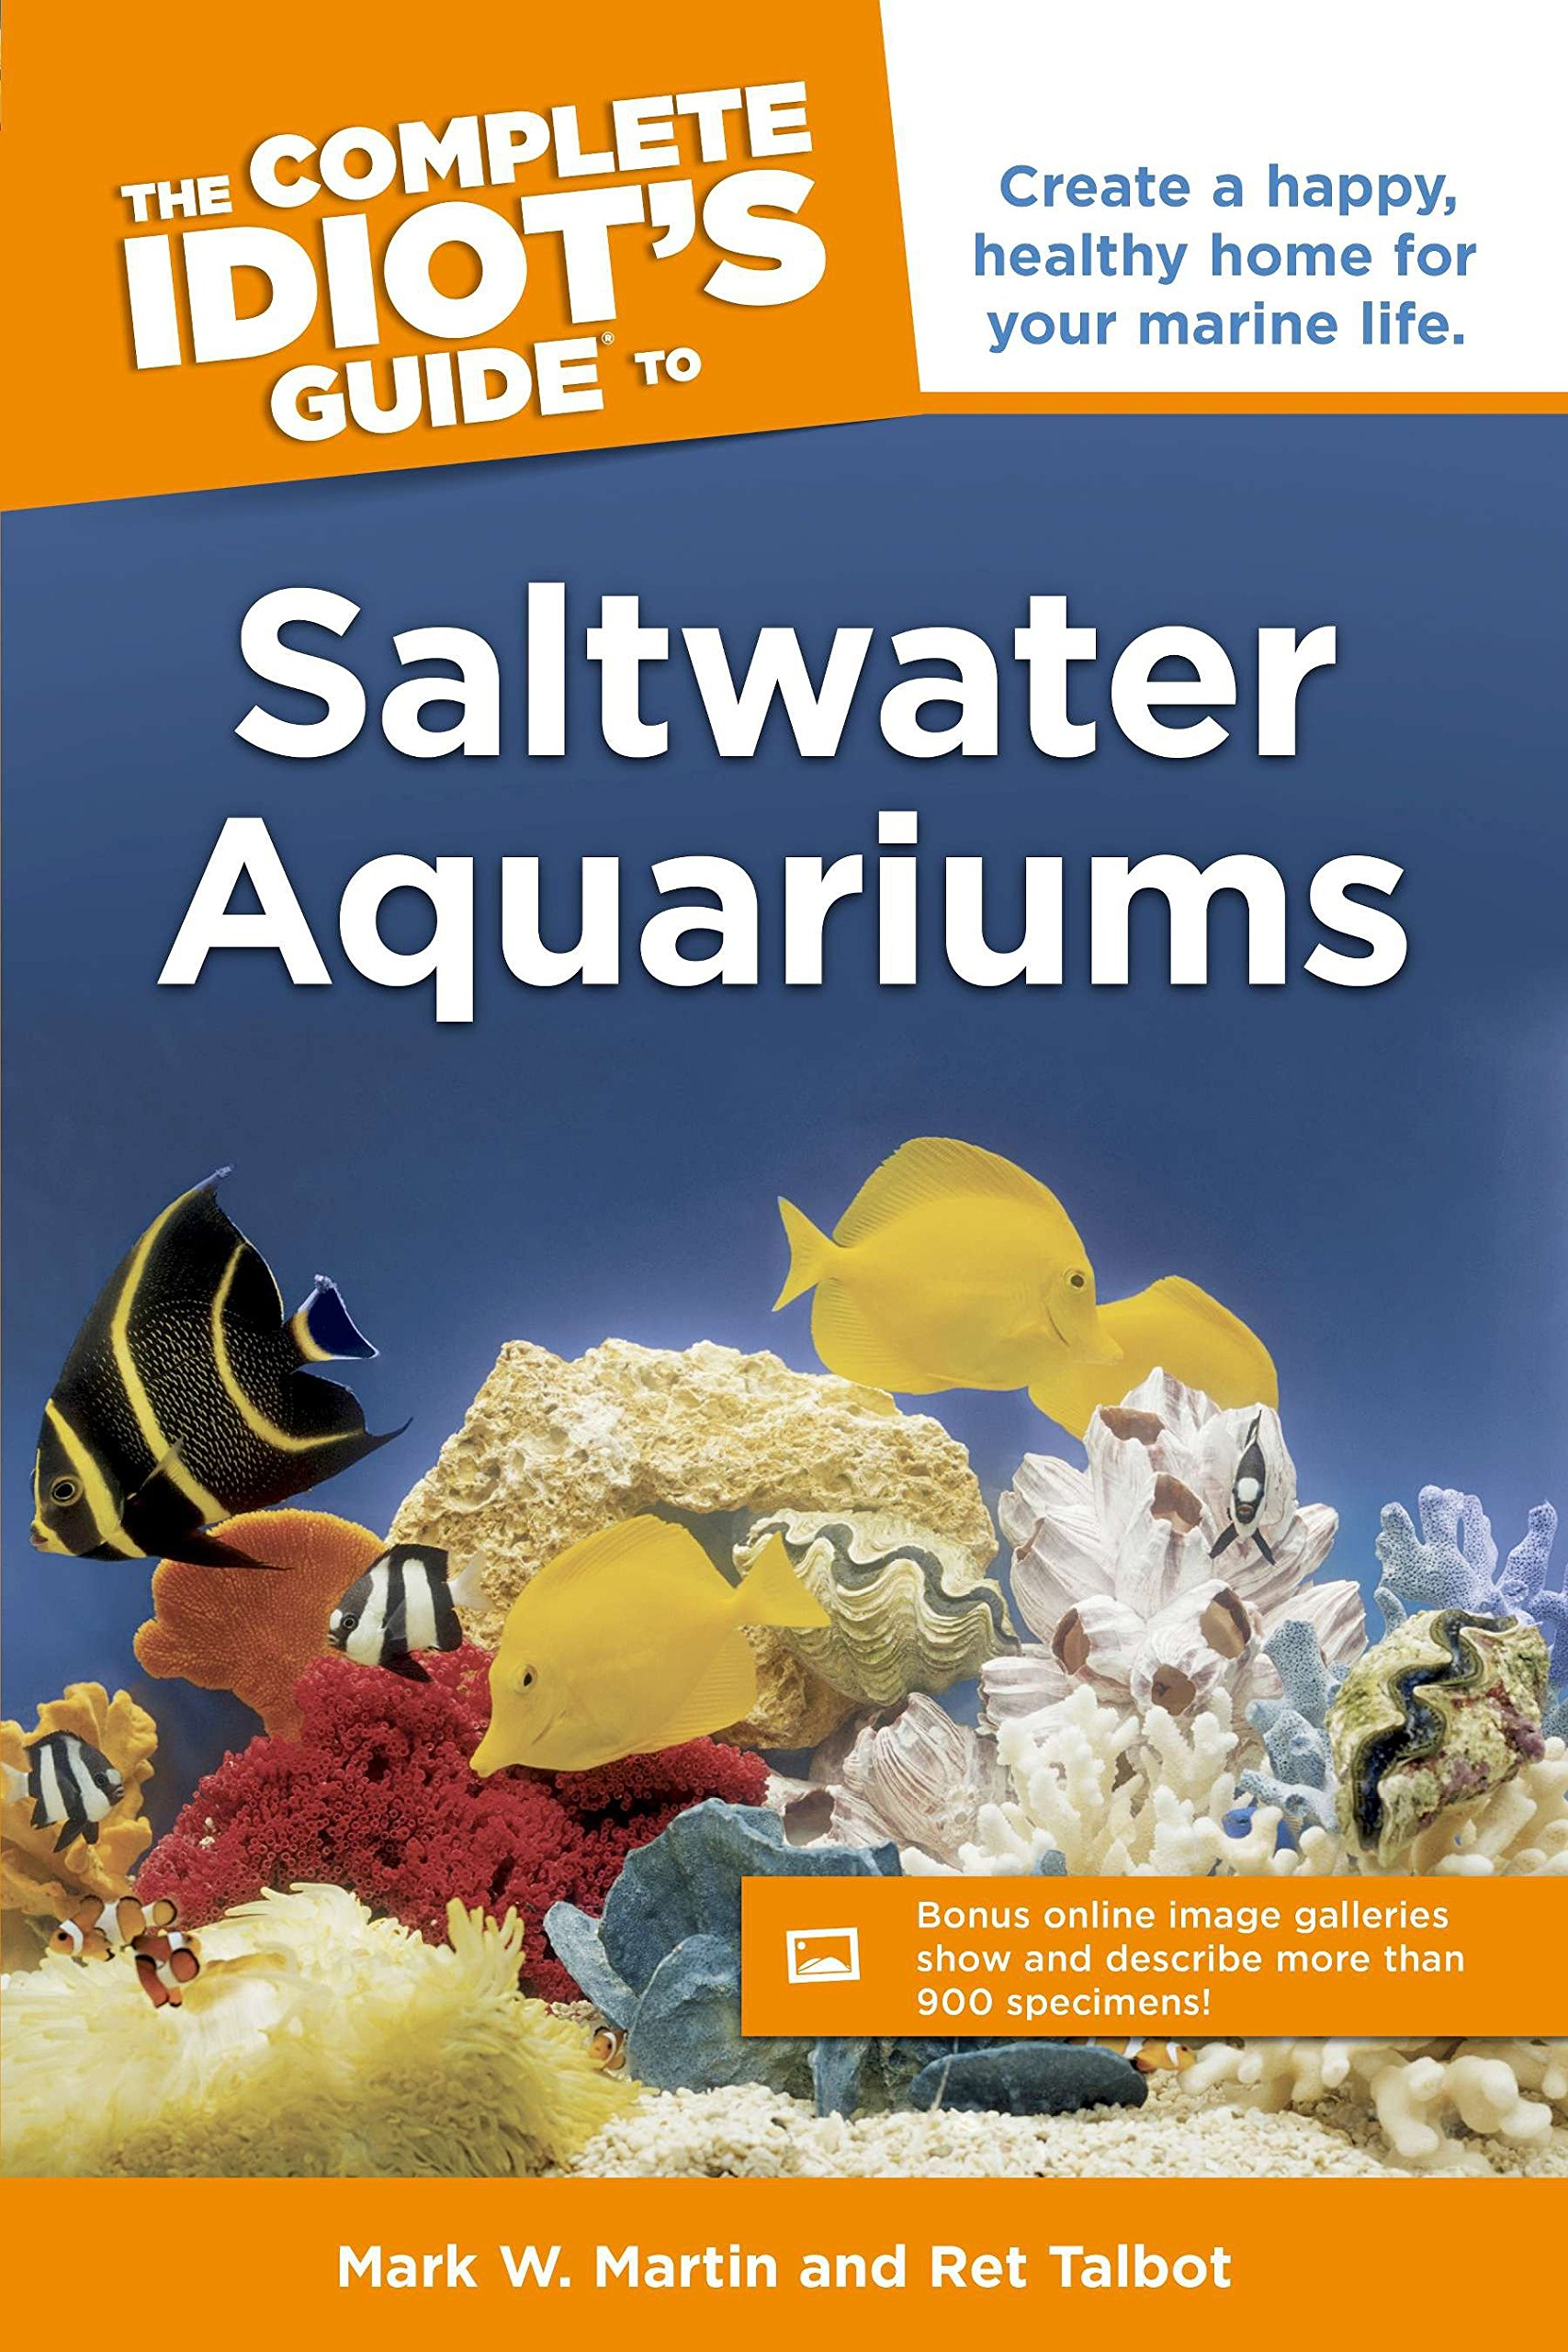 The Complete Idiot's Guide to Saltwater Aquariums: Create a Happy, Healthy Home for Your Marine Life (Complete Idiot's Guides (Lifestyle Paperback))